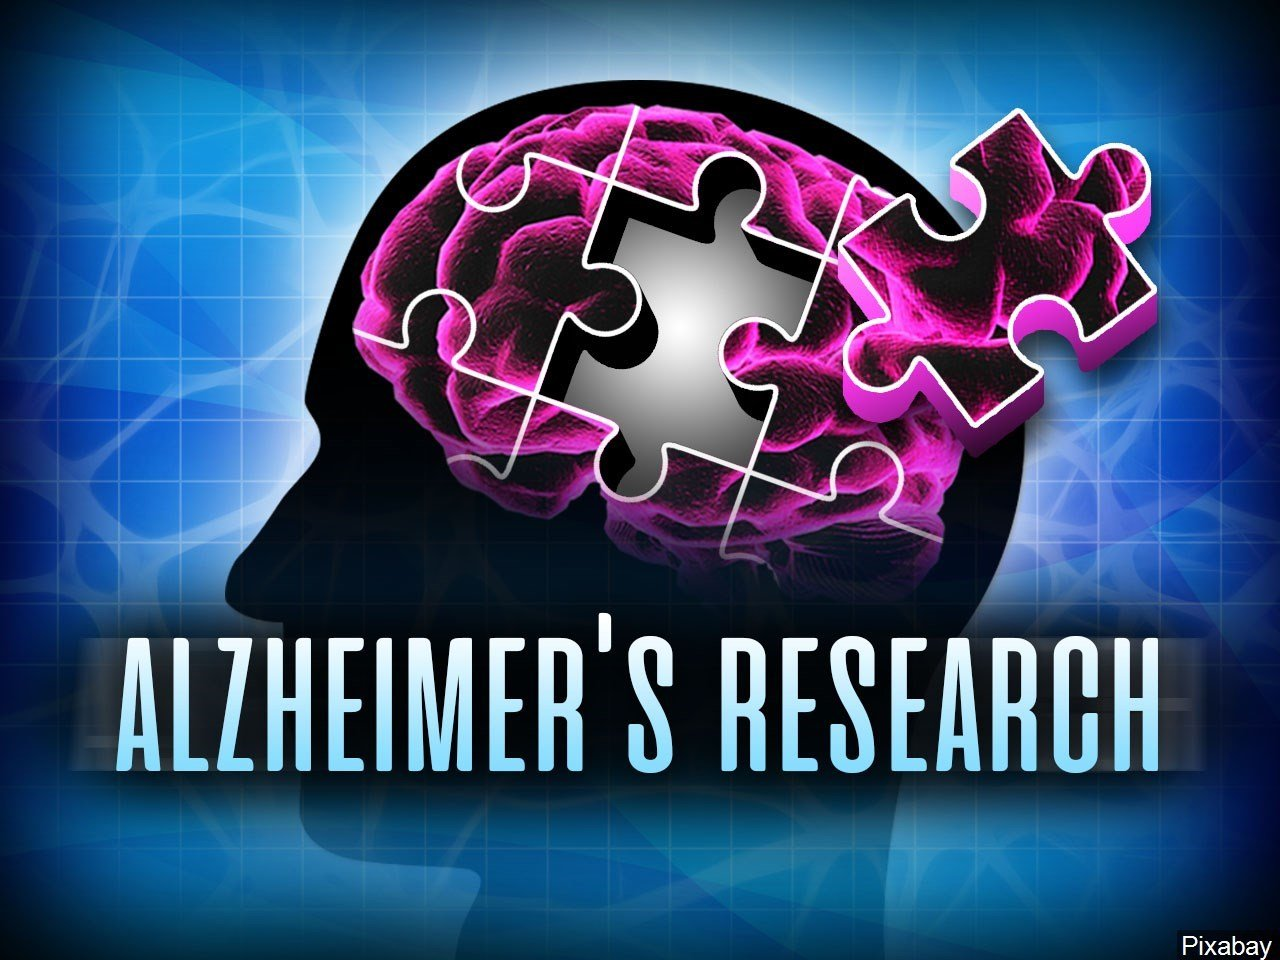 Herpes virus may have a connection to Alzheimer's disease